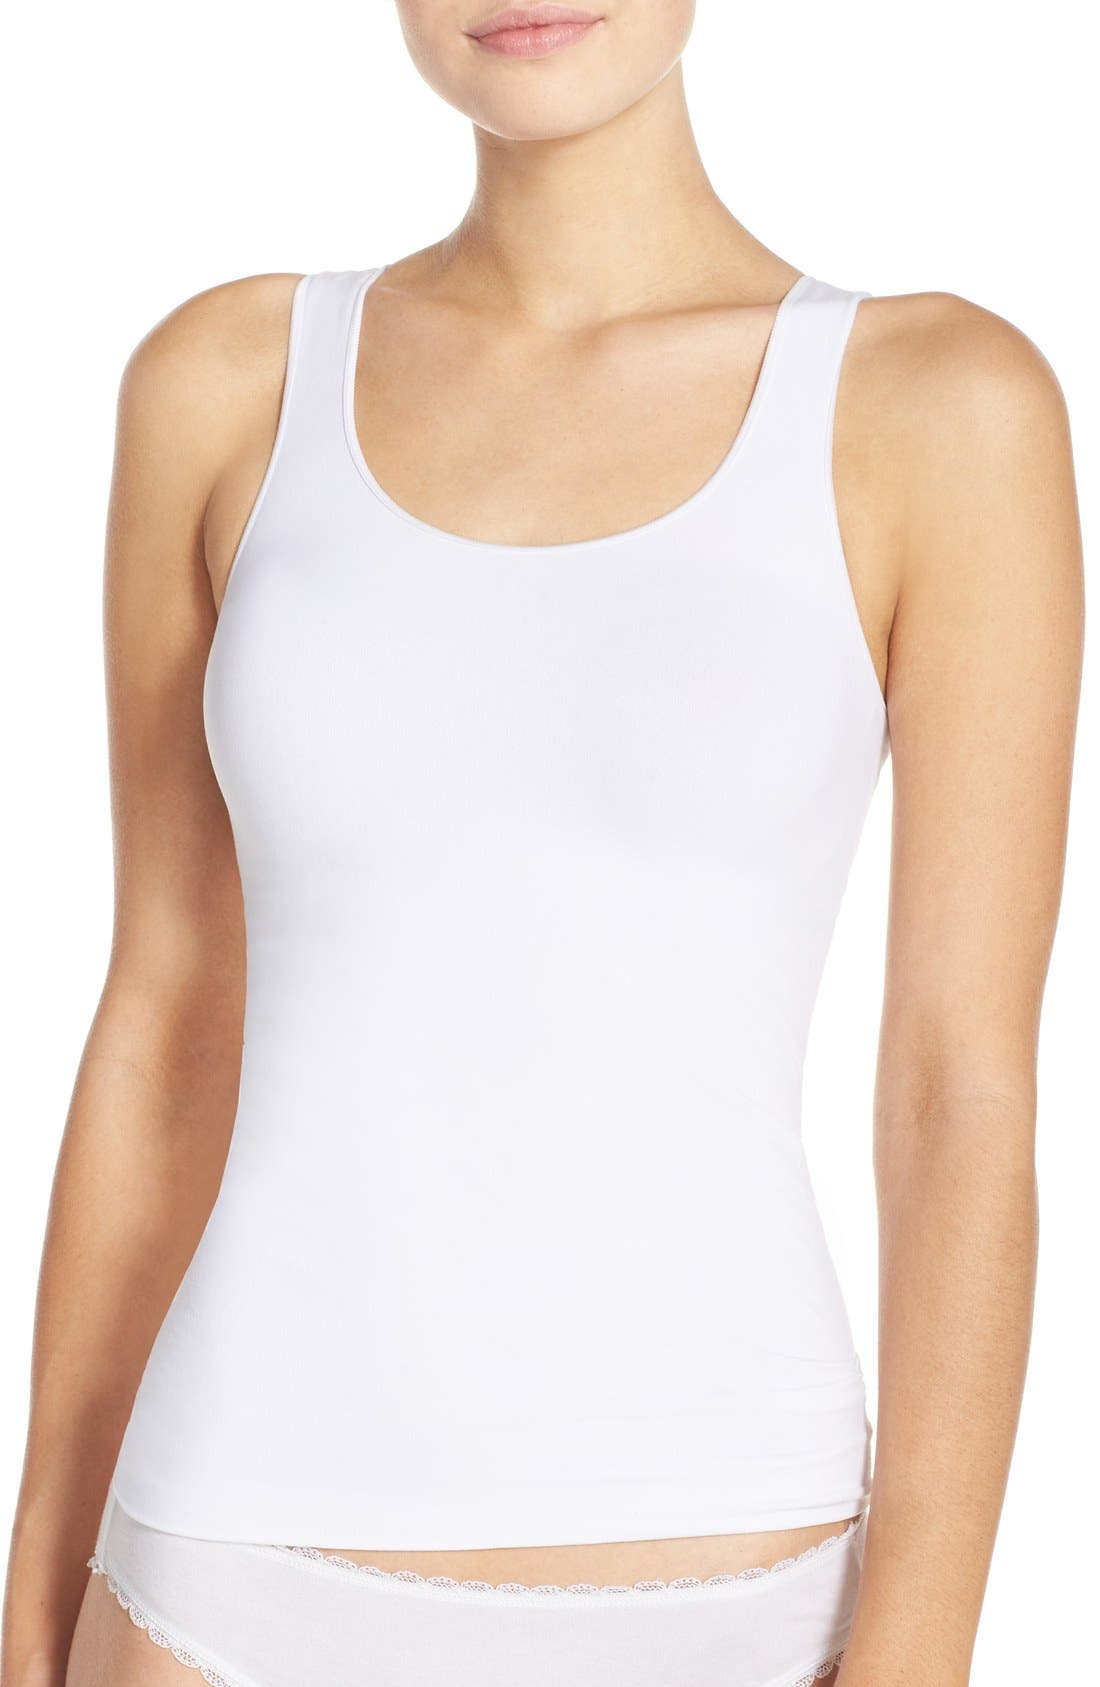 Alternate Image 1 Selected - Nordstrom Lingerie Two-Way Seamless Tank (2 for $49)